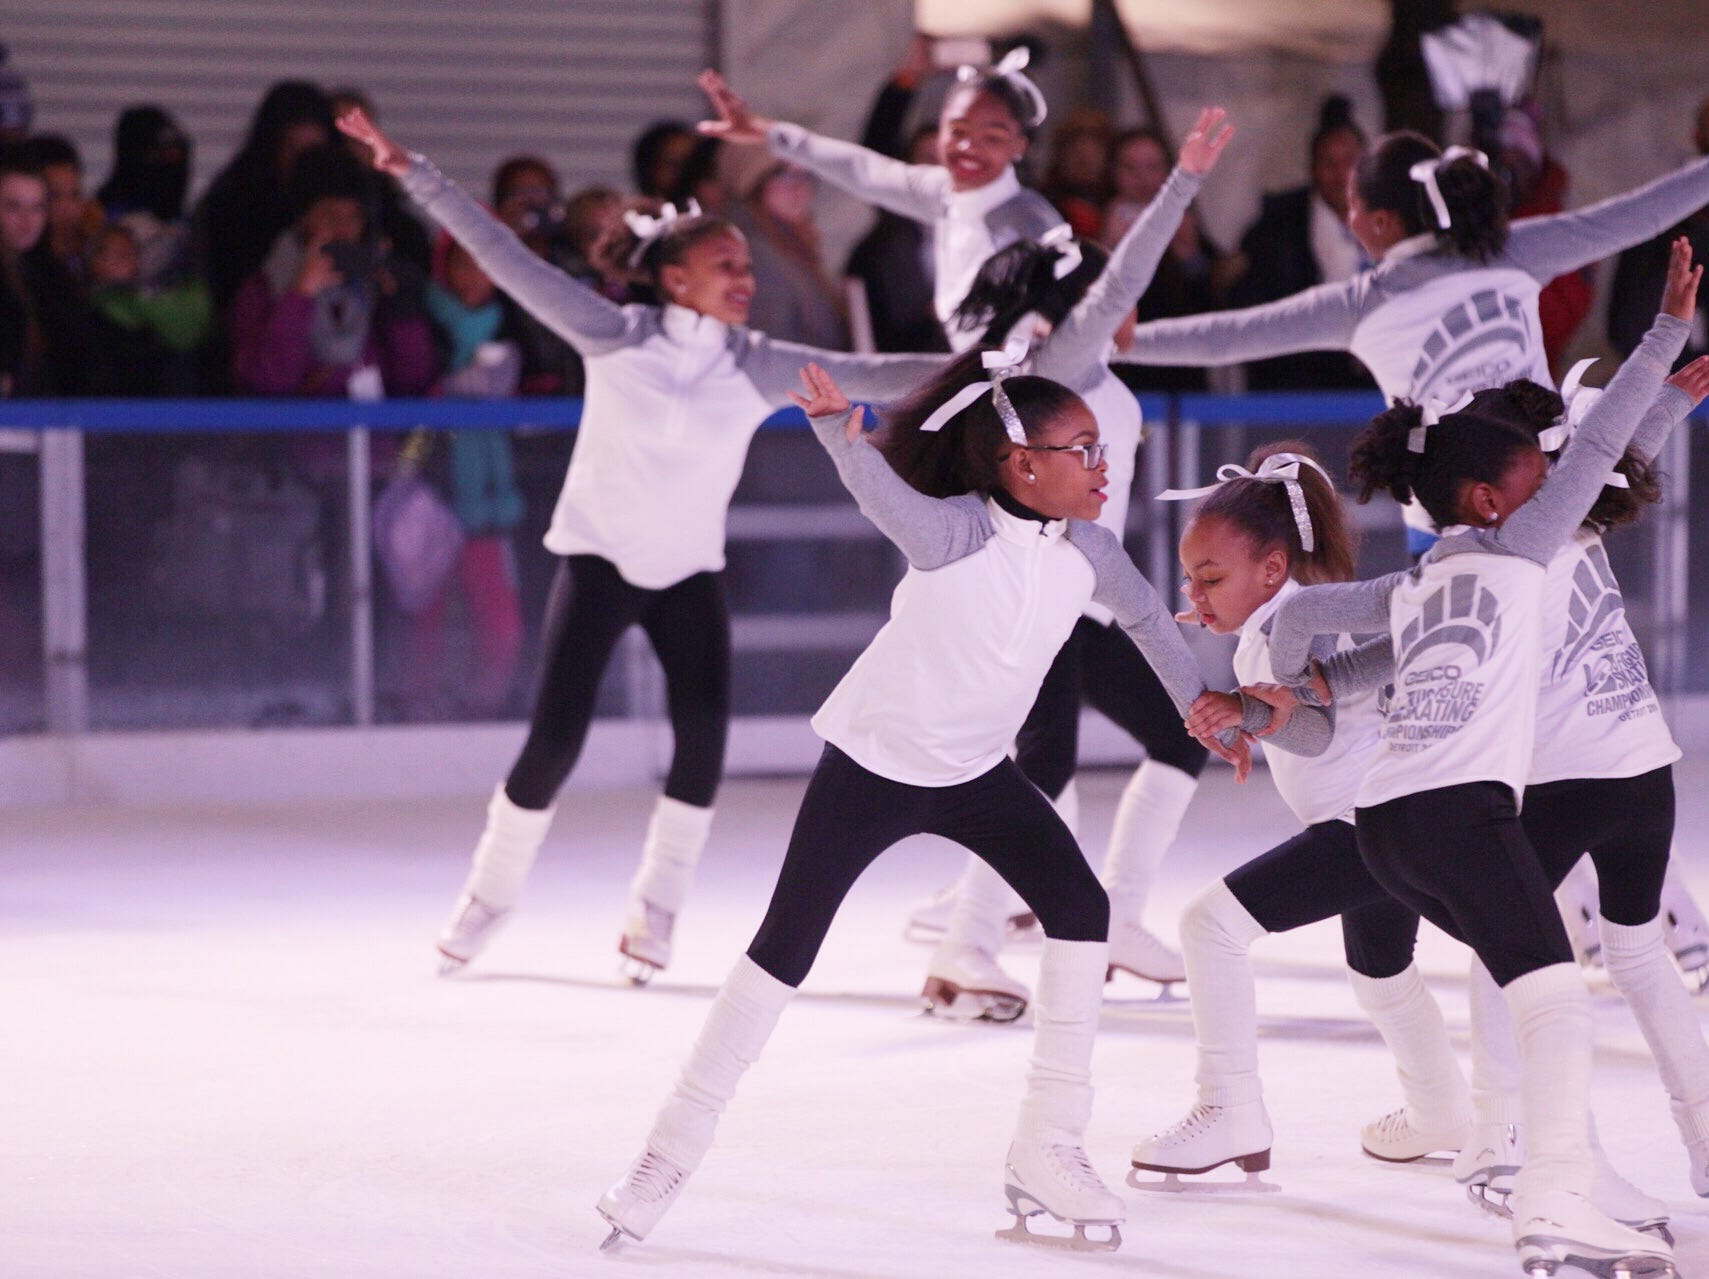 Figure Skating in Detroit members perform during the annual tree lighting event at Campus Martius Park in downtown Detroit on Friday, November 16, 2018.